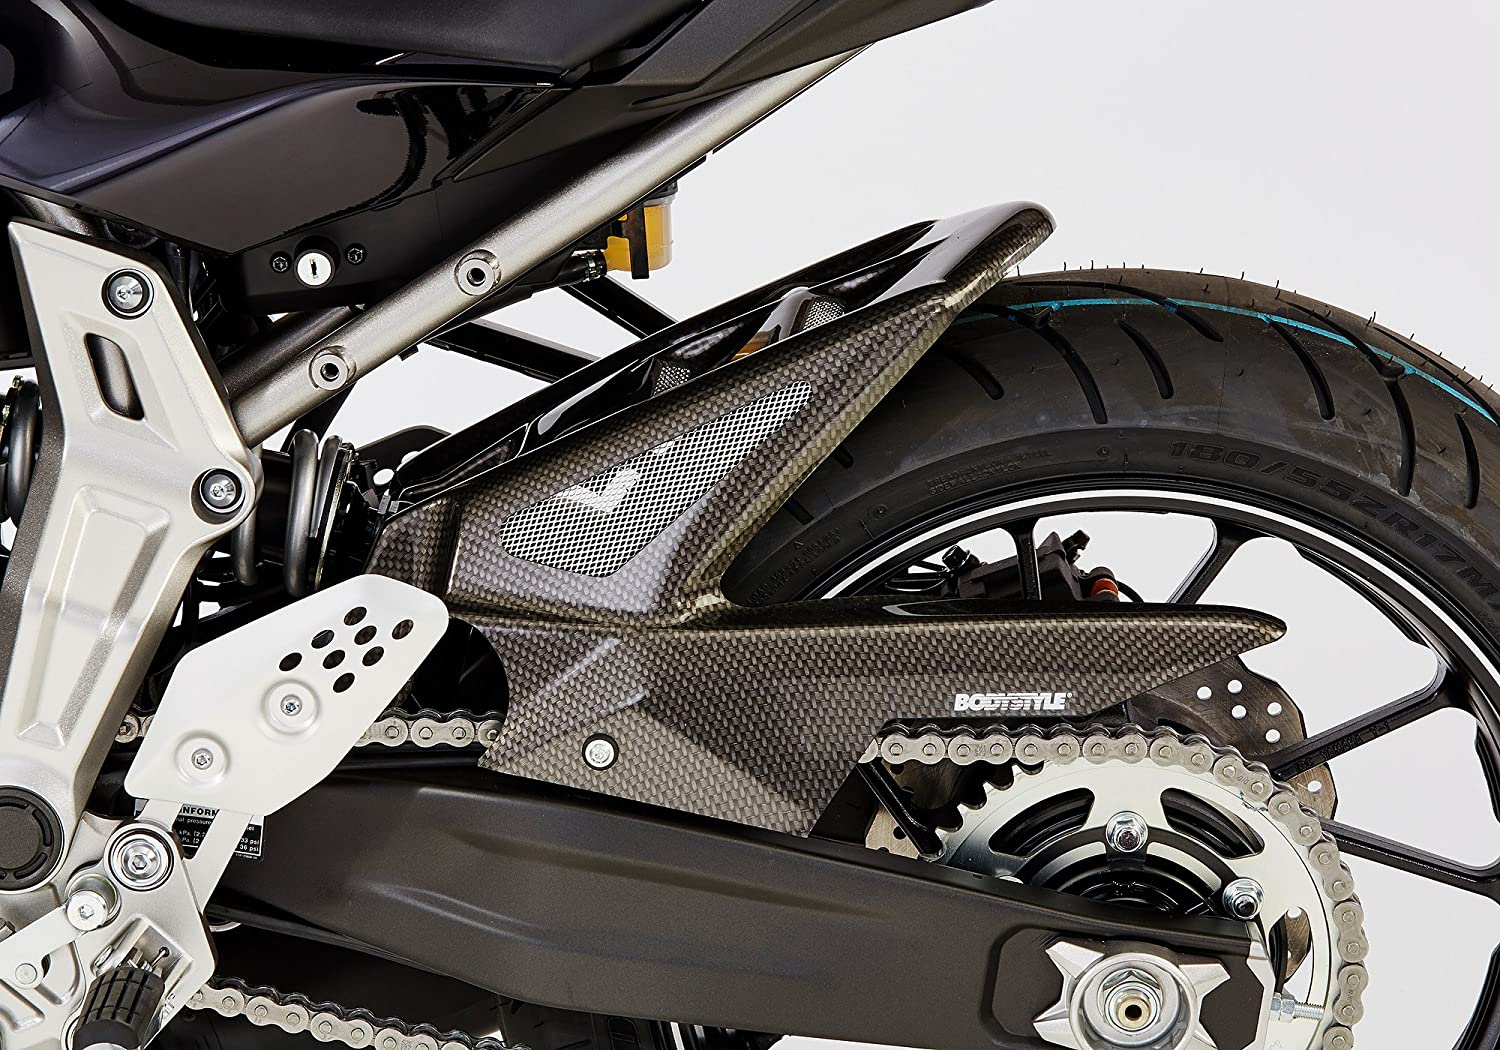 1961 Bodystyle/ /Parafango posteriore Carbon Look MT-07/motocage RM04/2015/ /2016/